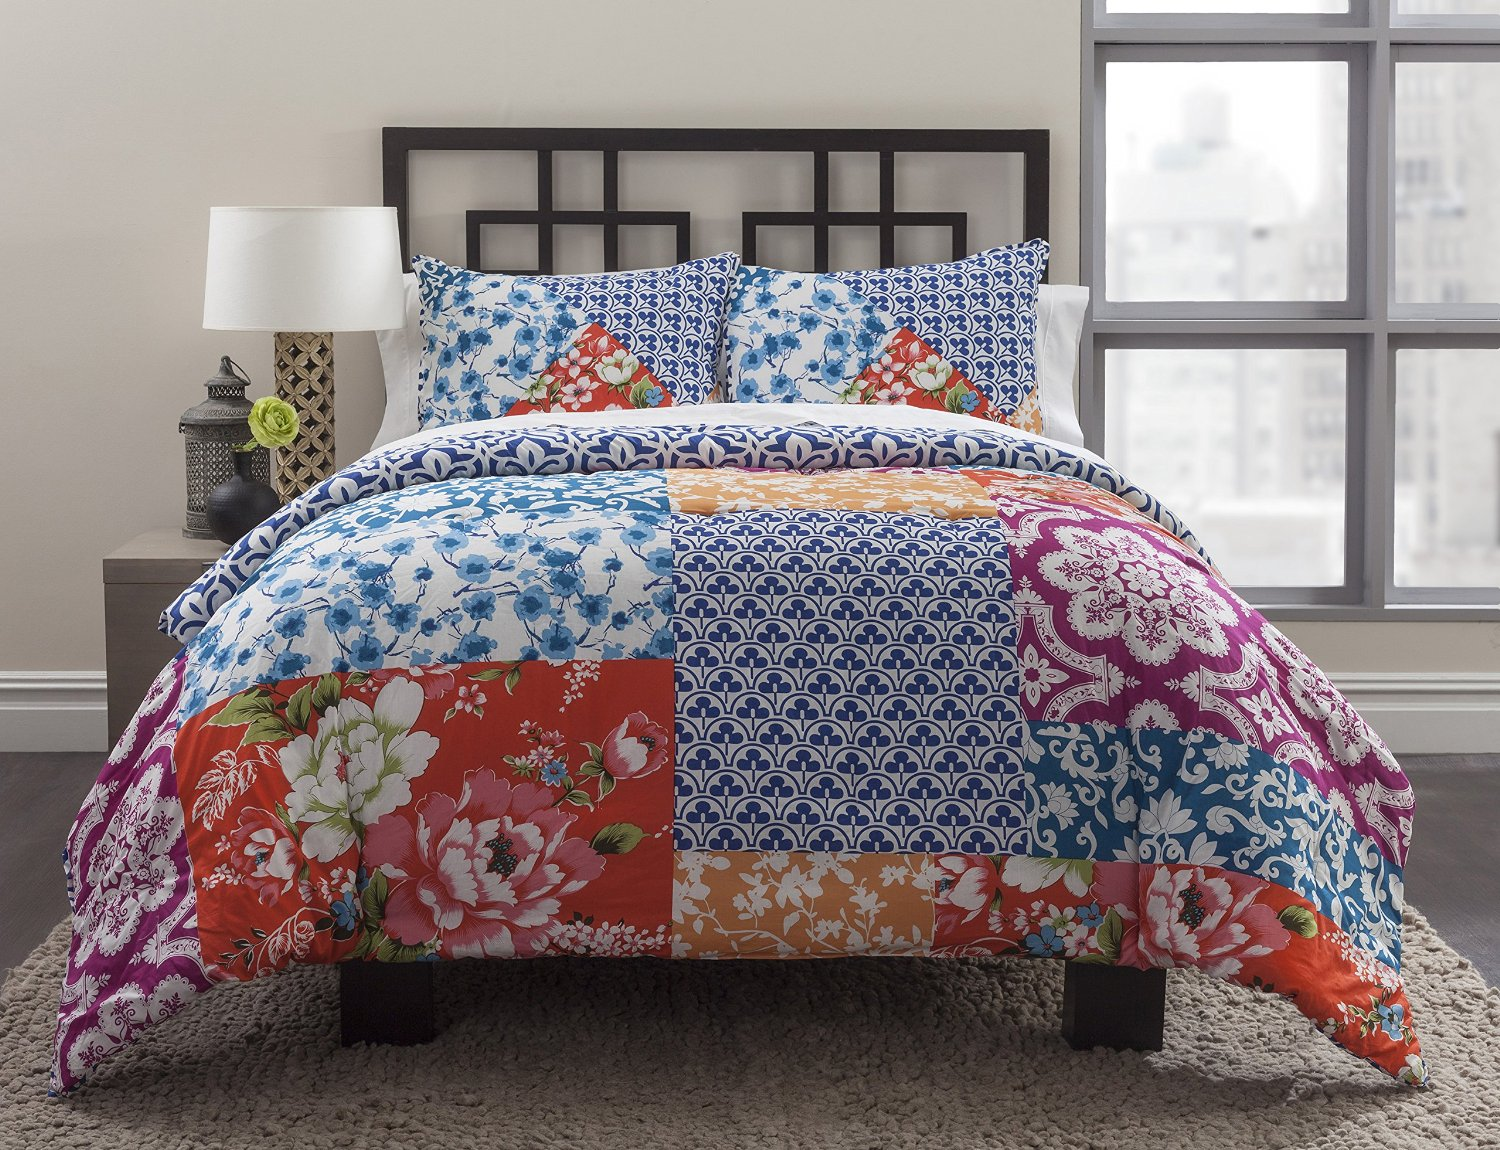 chinoiserie duvet set best catherine lansfield vintage floral  - chinoiserie bedspread and shams with chinoiserie duvet set